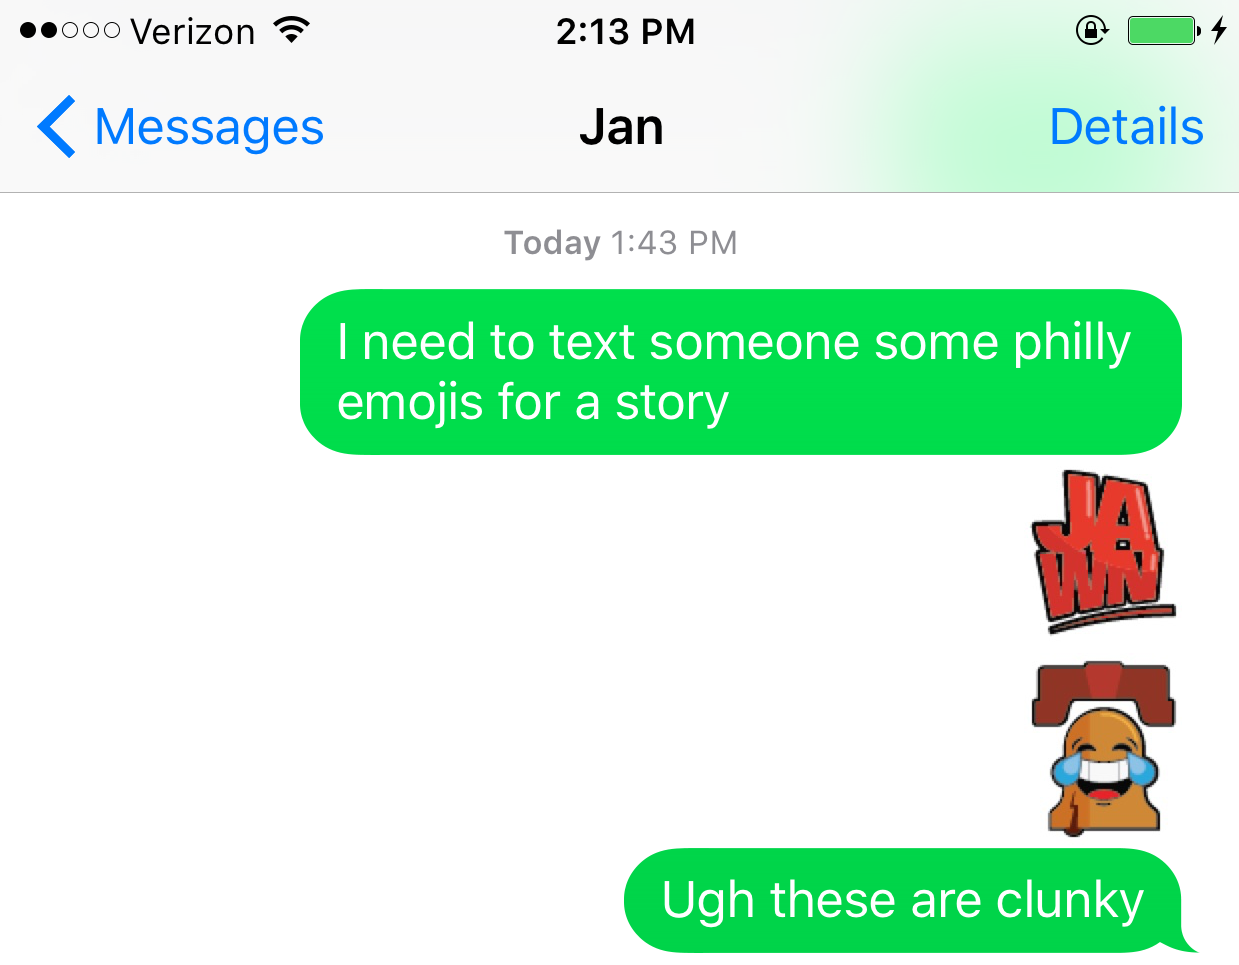 Philly emojis - example